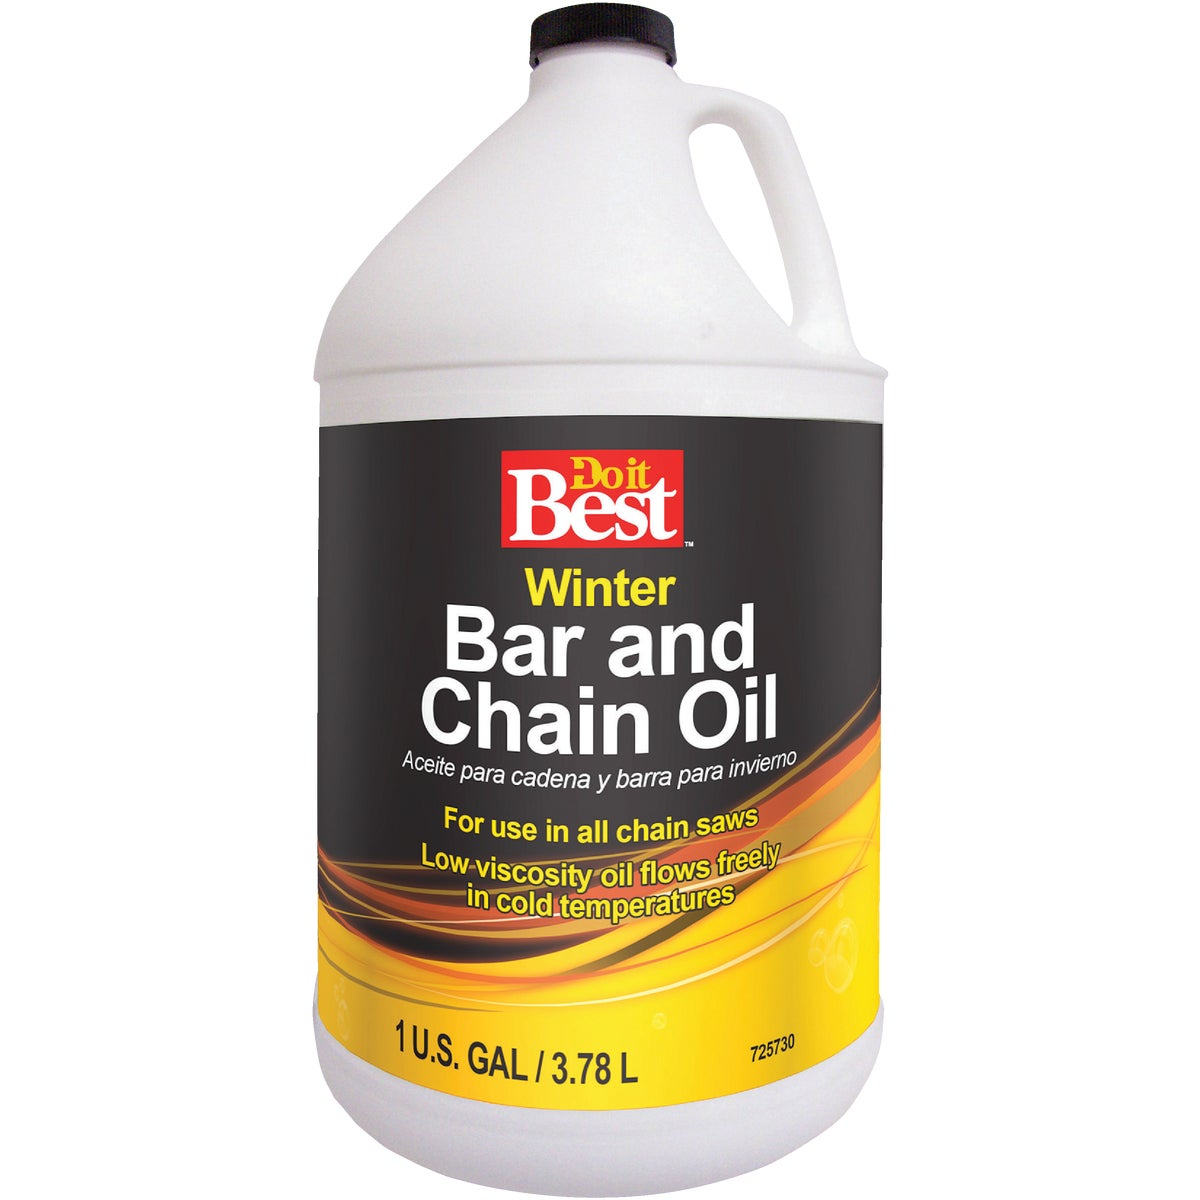 GL WINTER BAR/CHAIN OIL - 725730 by Warren Oil Co Inc